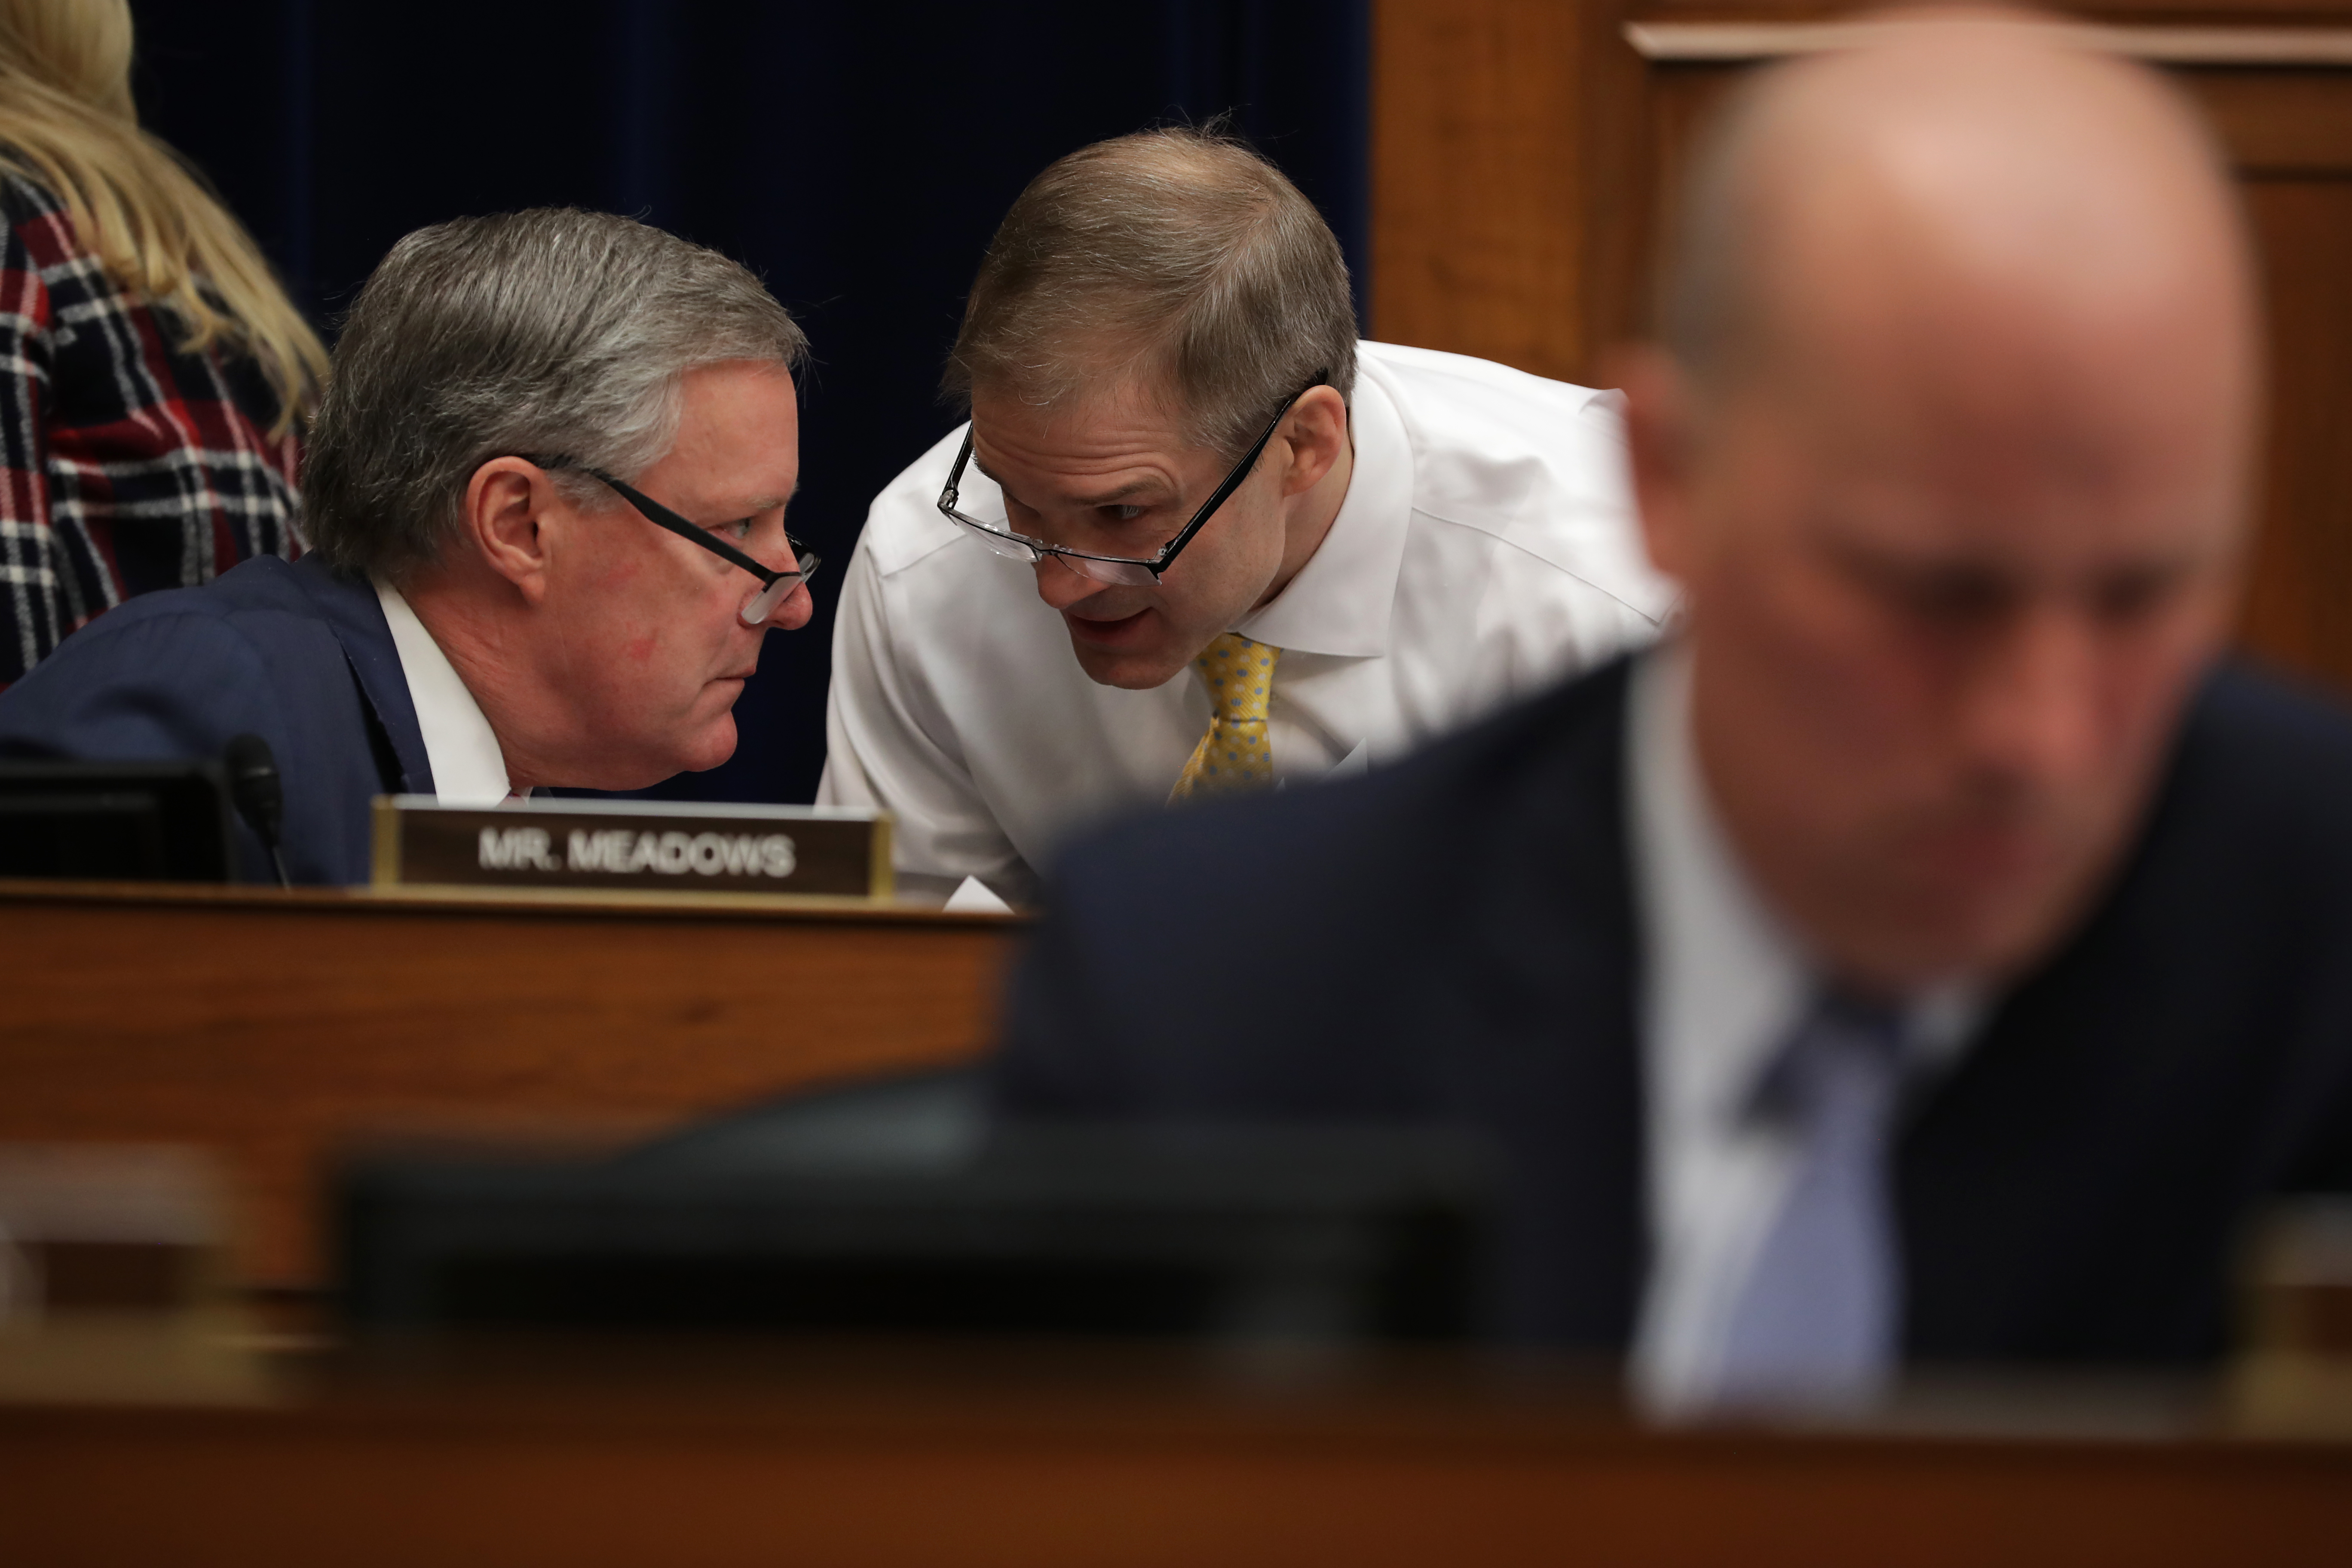 WASHINGTON, DC - FEBRUARY 27: Rep. Jim Jordan (R-OH) (R) and Rep. Mark Meadows (R-NC) talk during testimony by Michael Cohen, former attorney and fixer for President Donald Trump before the House Oversight Committee on Capitol Hill February 27, 2019 in Washington, DC. (Photo by Chip Somodevilla/Getty Images)